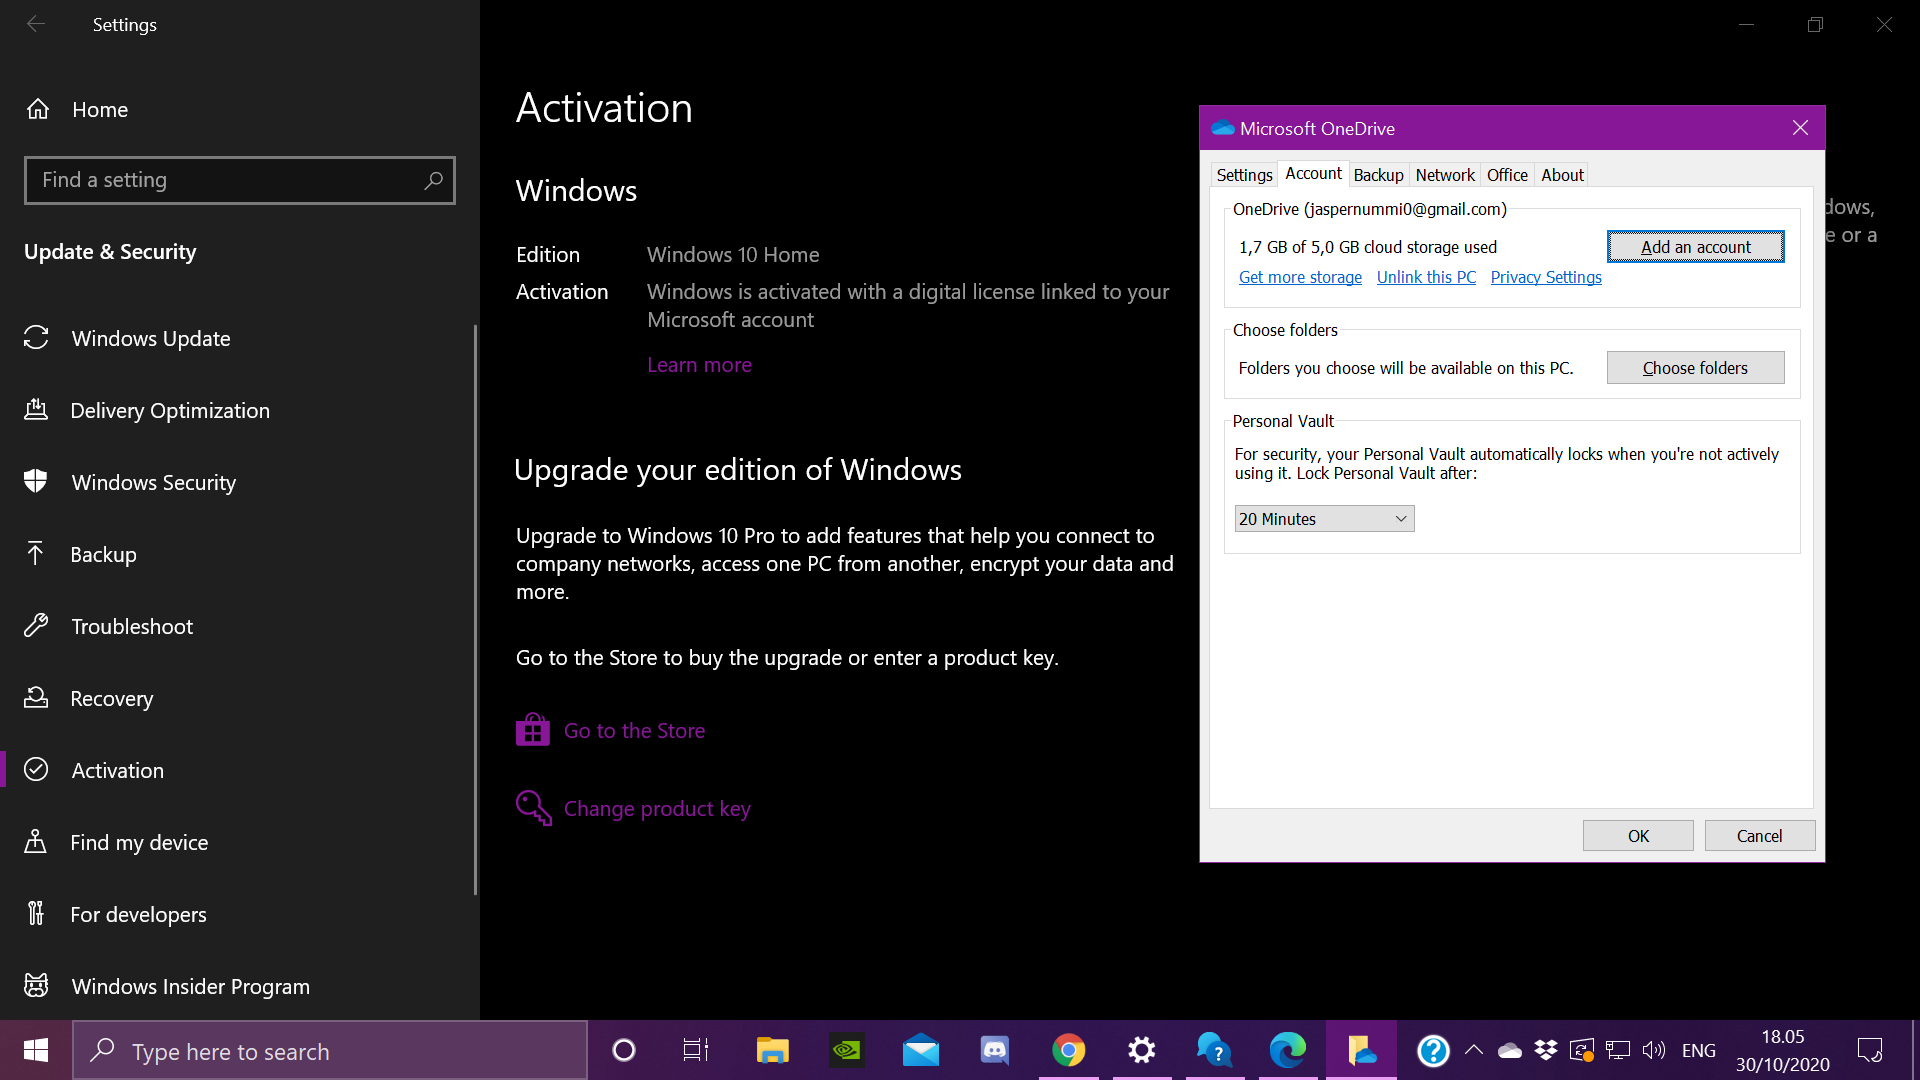 Windows saying its not activated when i have a digital licence 1217f02e-de01-4156-ab4b-e88da7684308?upload=true.png